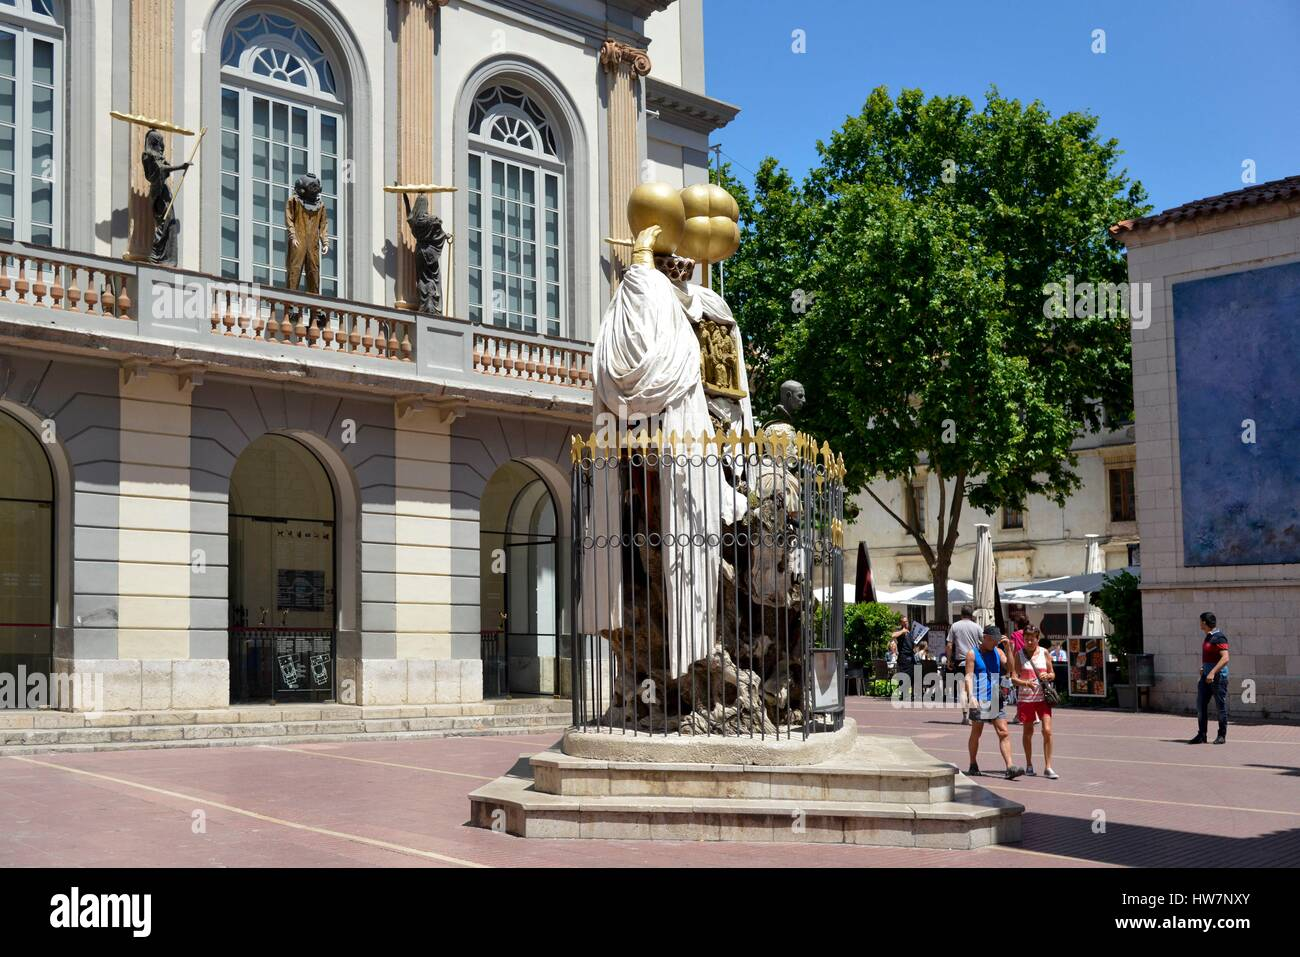 Spain Catalonia Costa Brava province of Girona Figueres Gala and Salvadore Dali Place sculpture in front of the - Stock Image